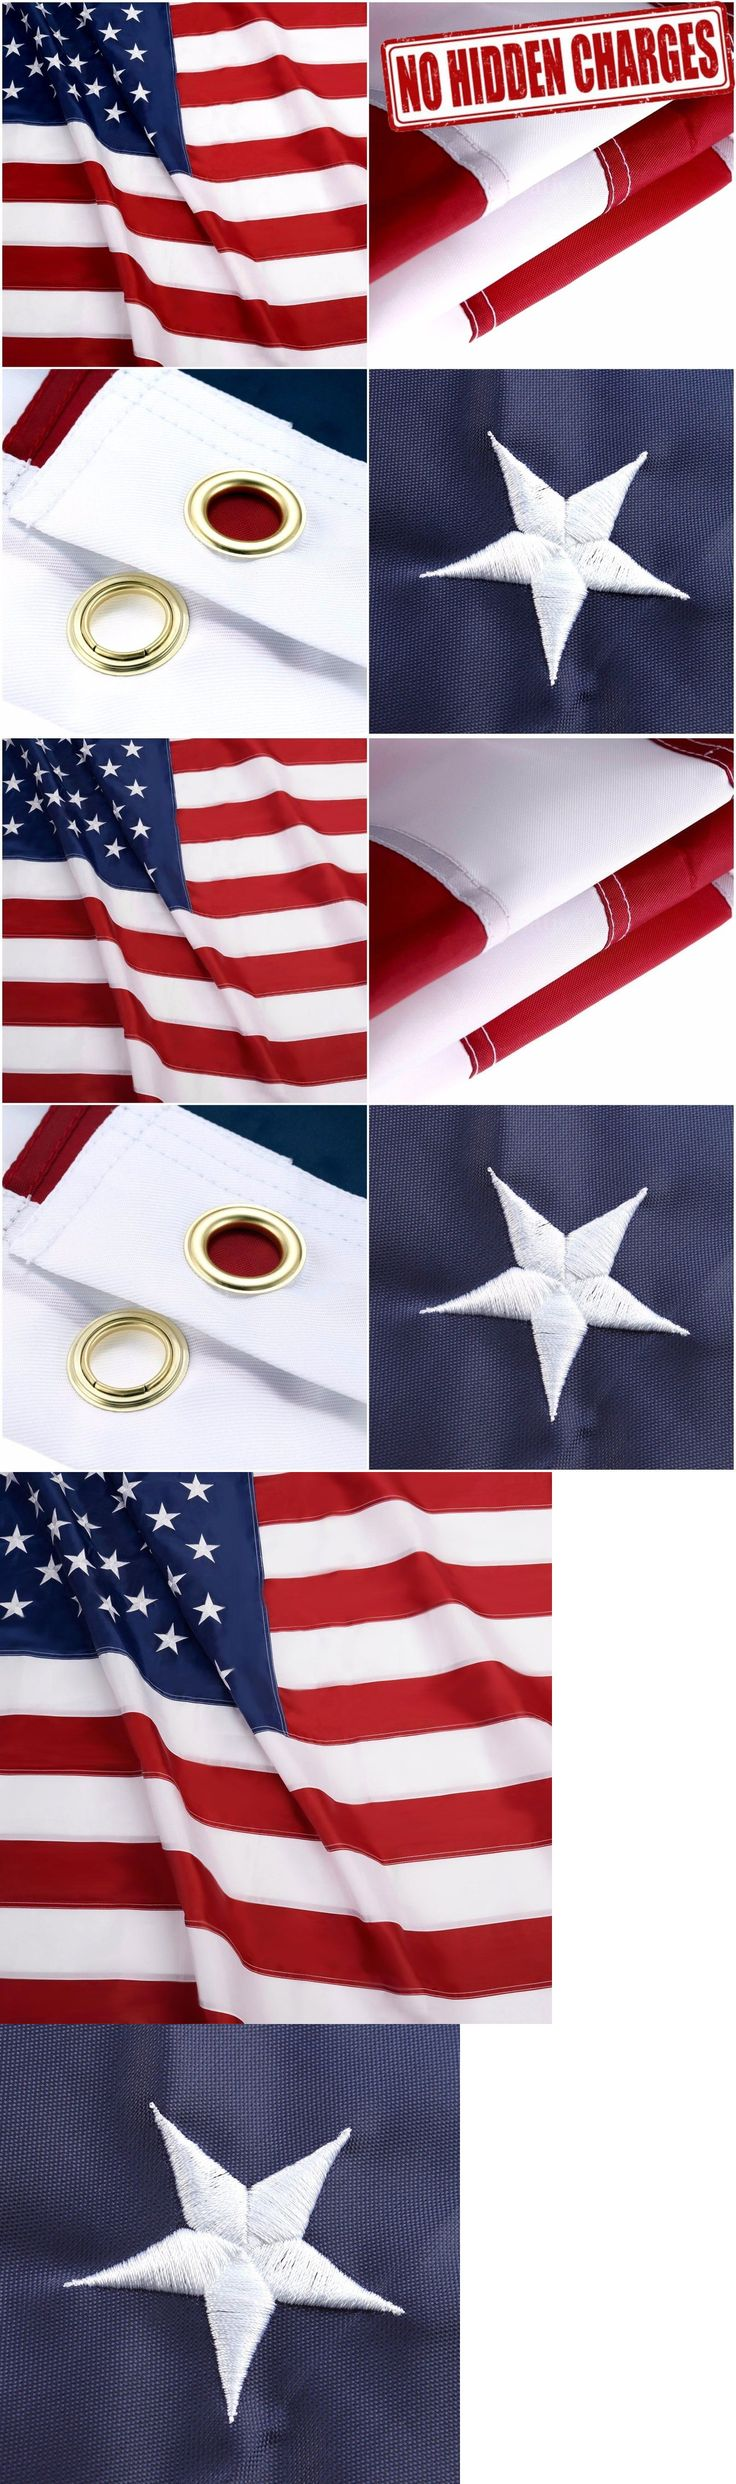 Flags 43533: Us American Flag Deluxe Large Jumbo Sewn Nylon Embroidered Stars 10X15 Ft Sizes -> BUY IT NOW ONLY: $111.82 on eBay!